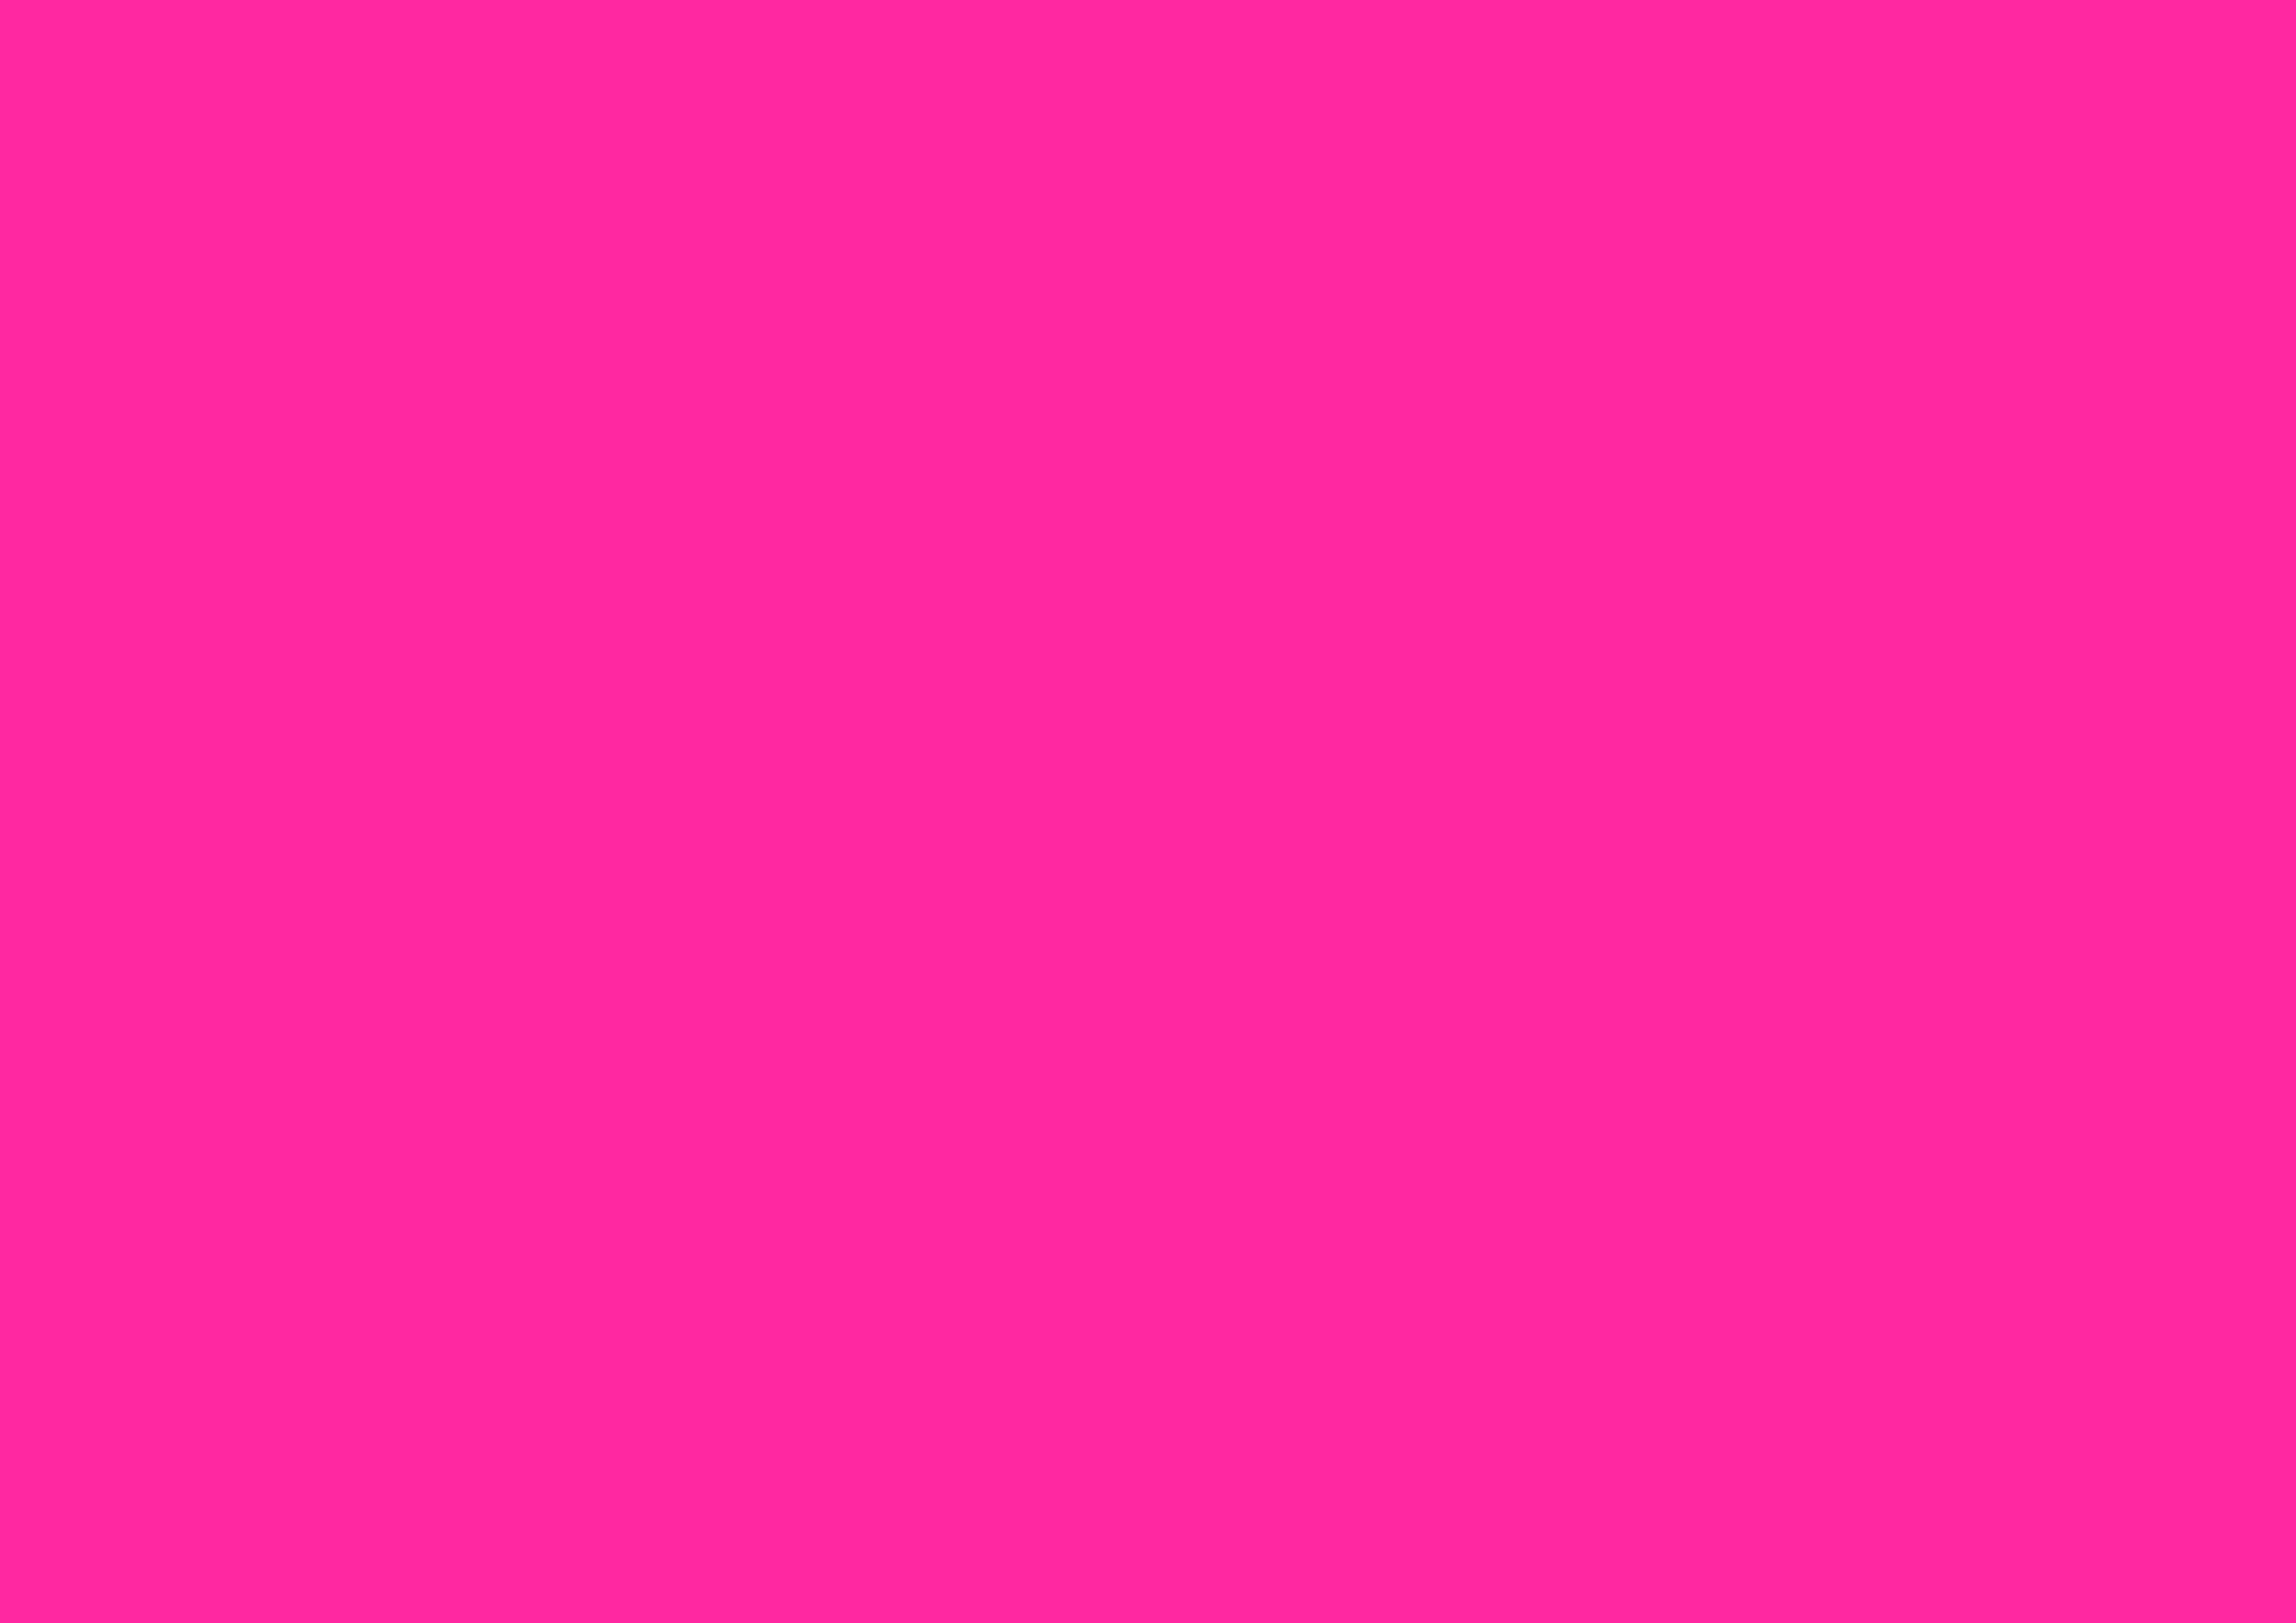 3508x2480 Persian Rose Solid Color Background